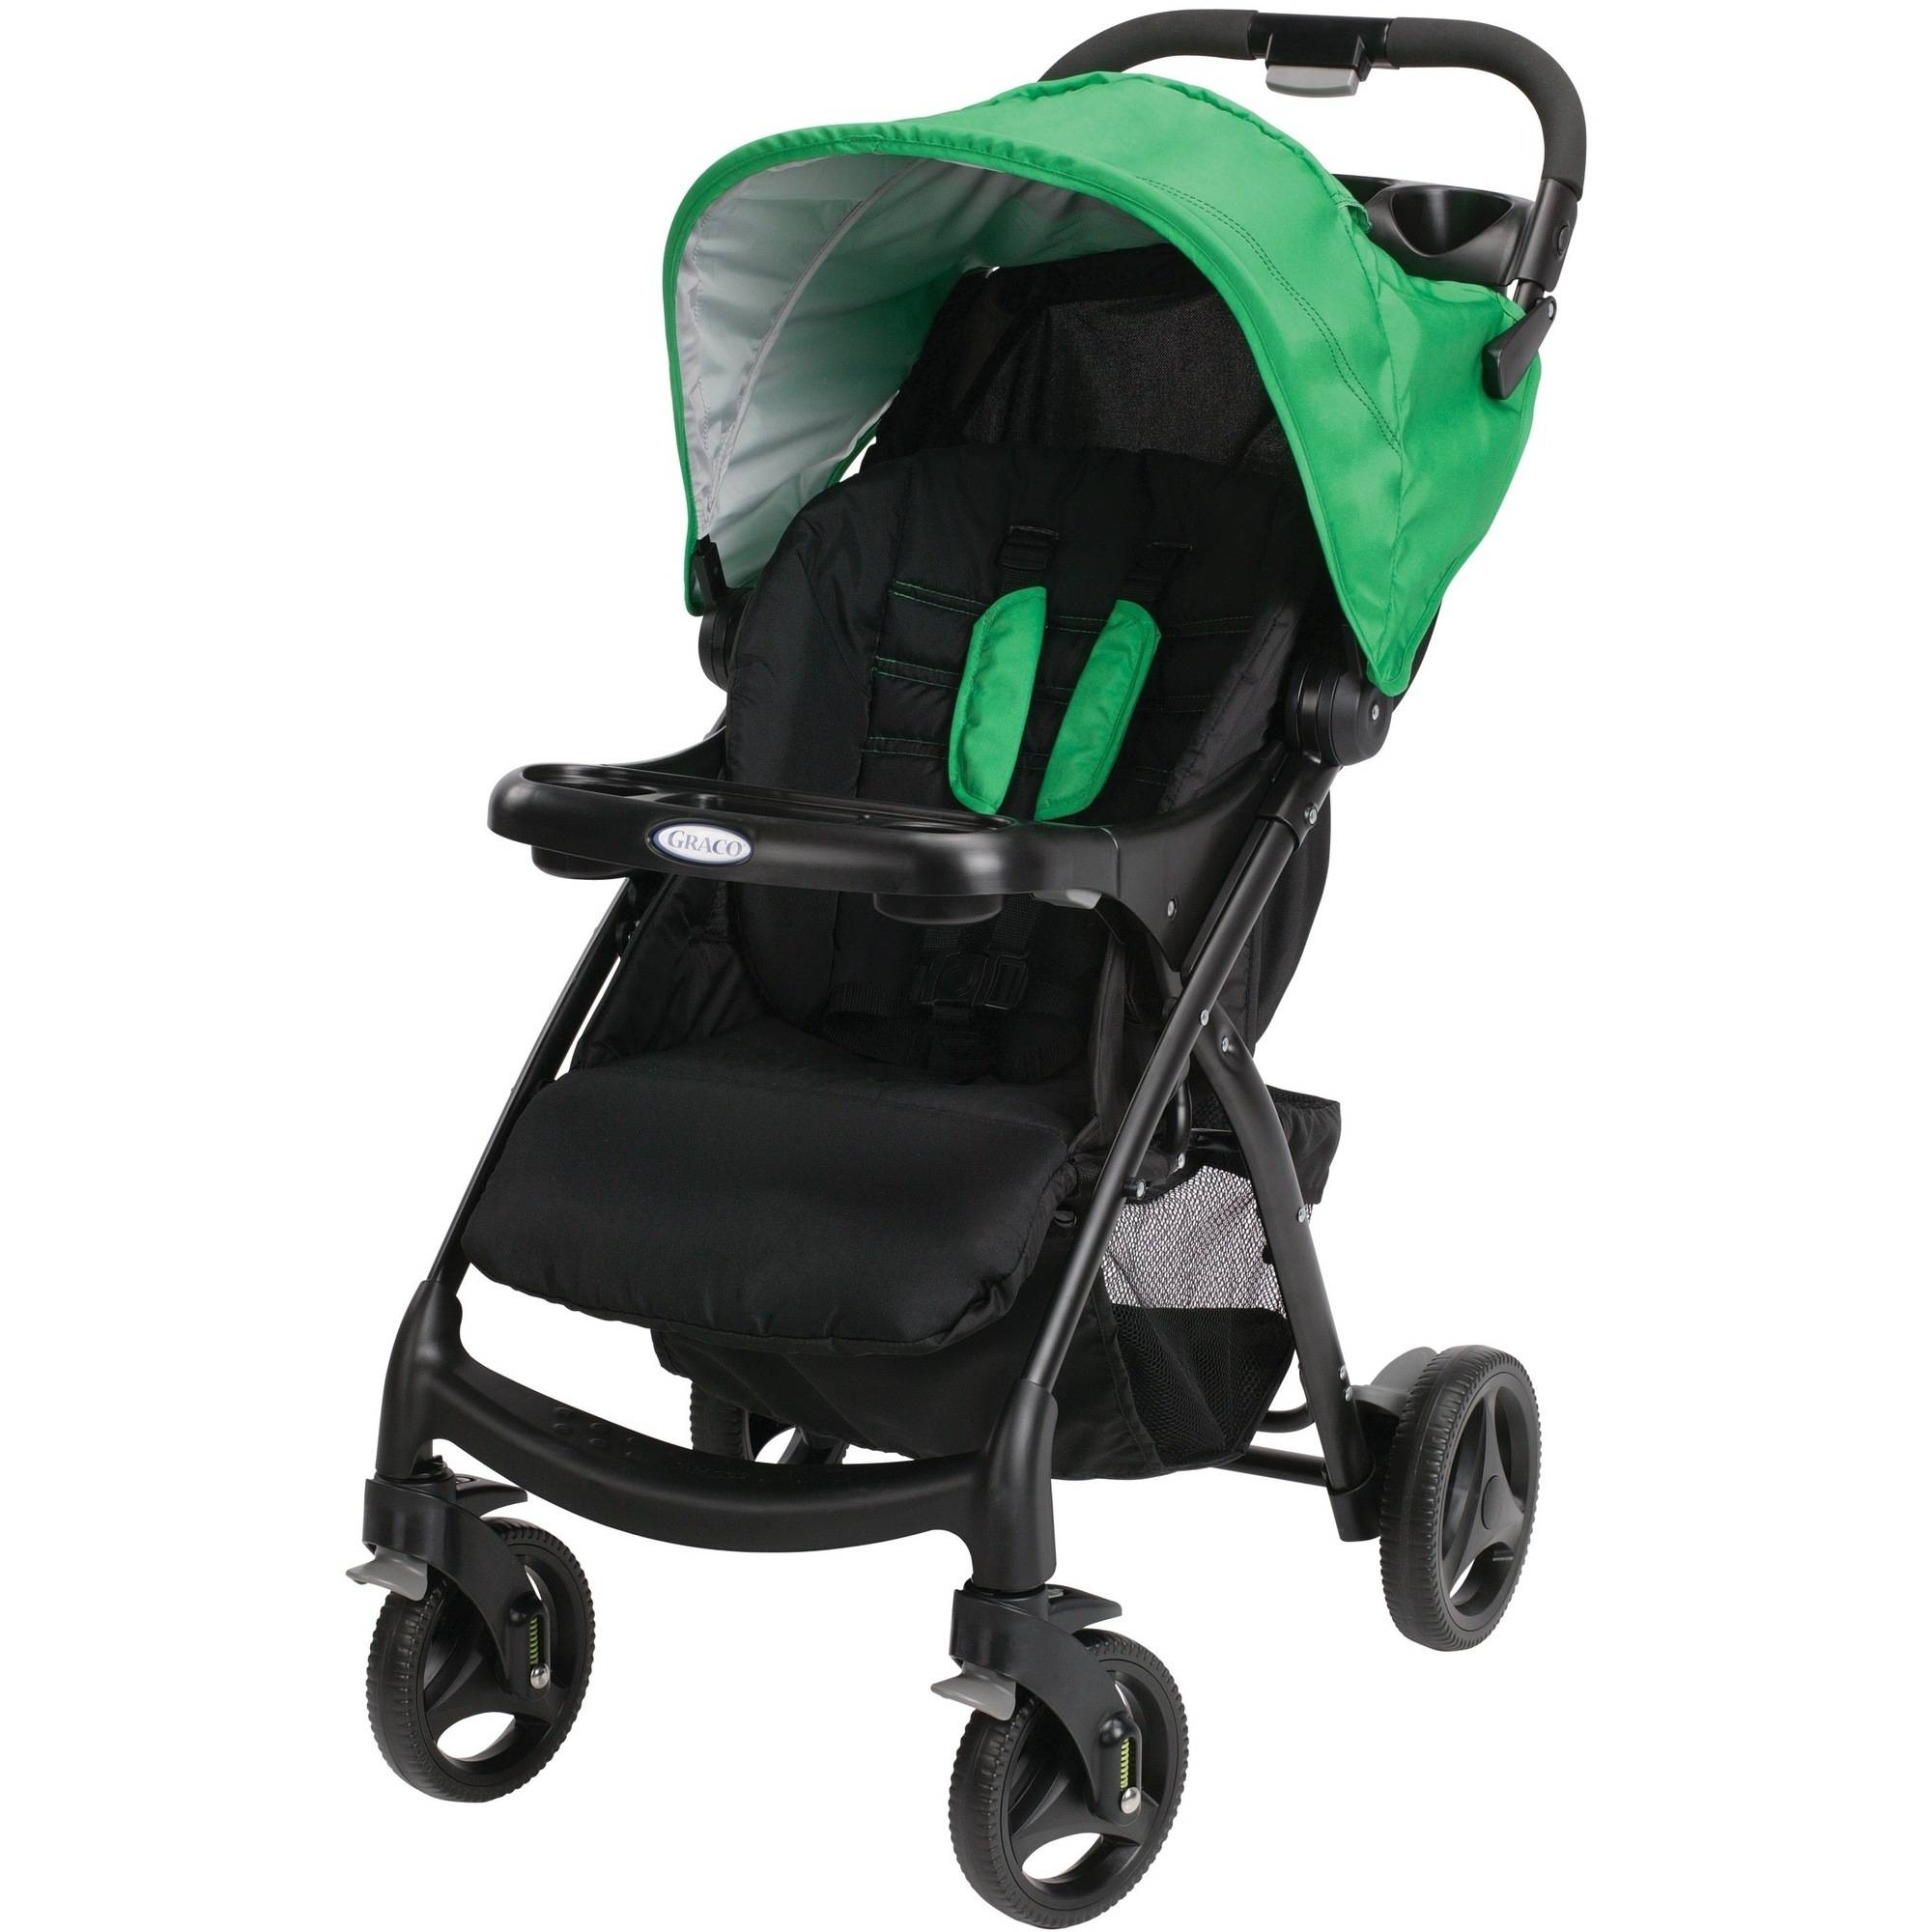 Graco Verb Click Connect Stroller, Fern